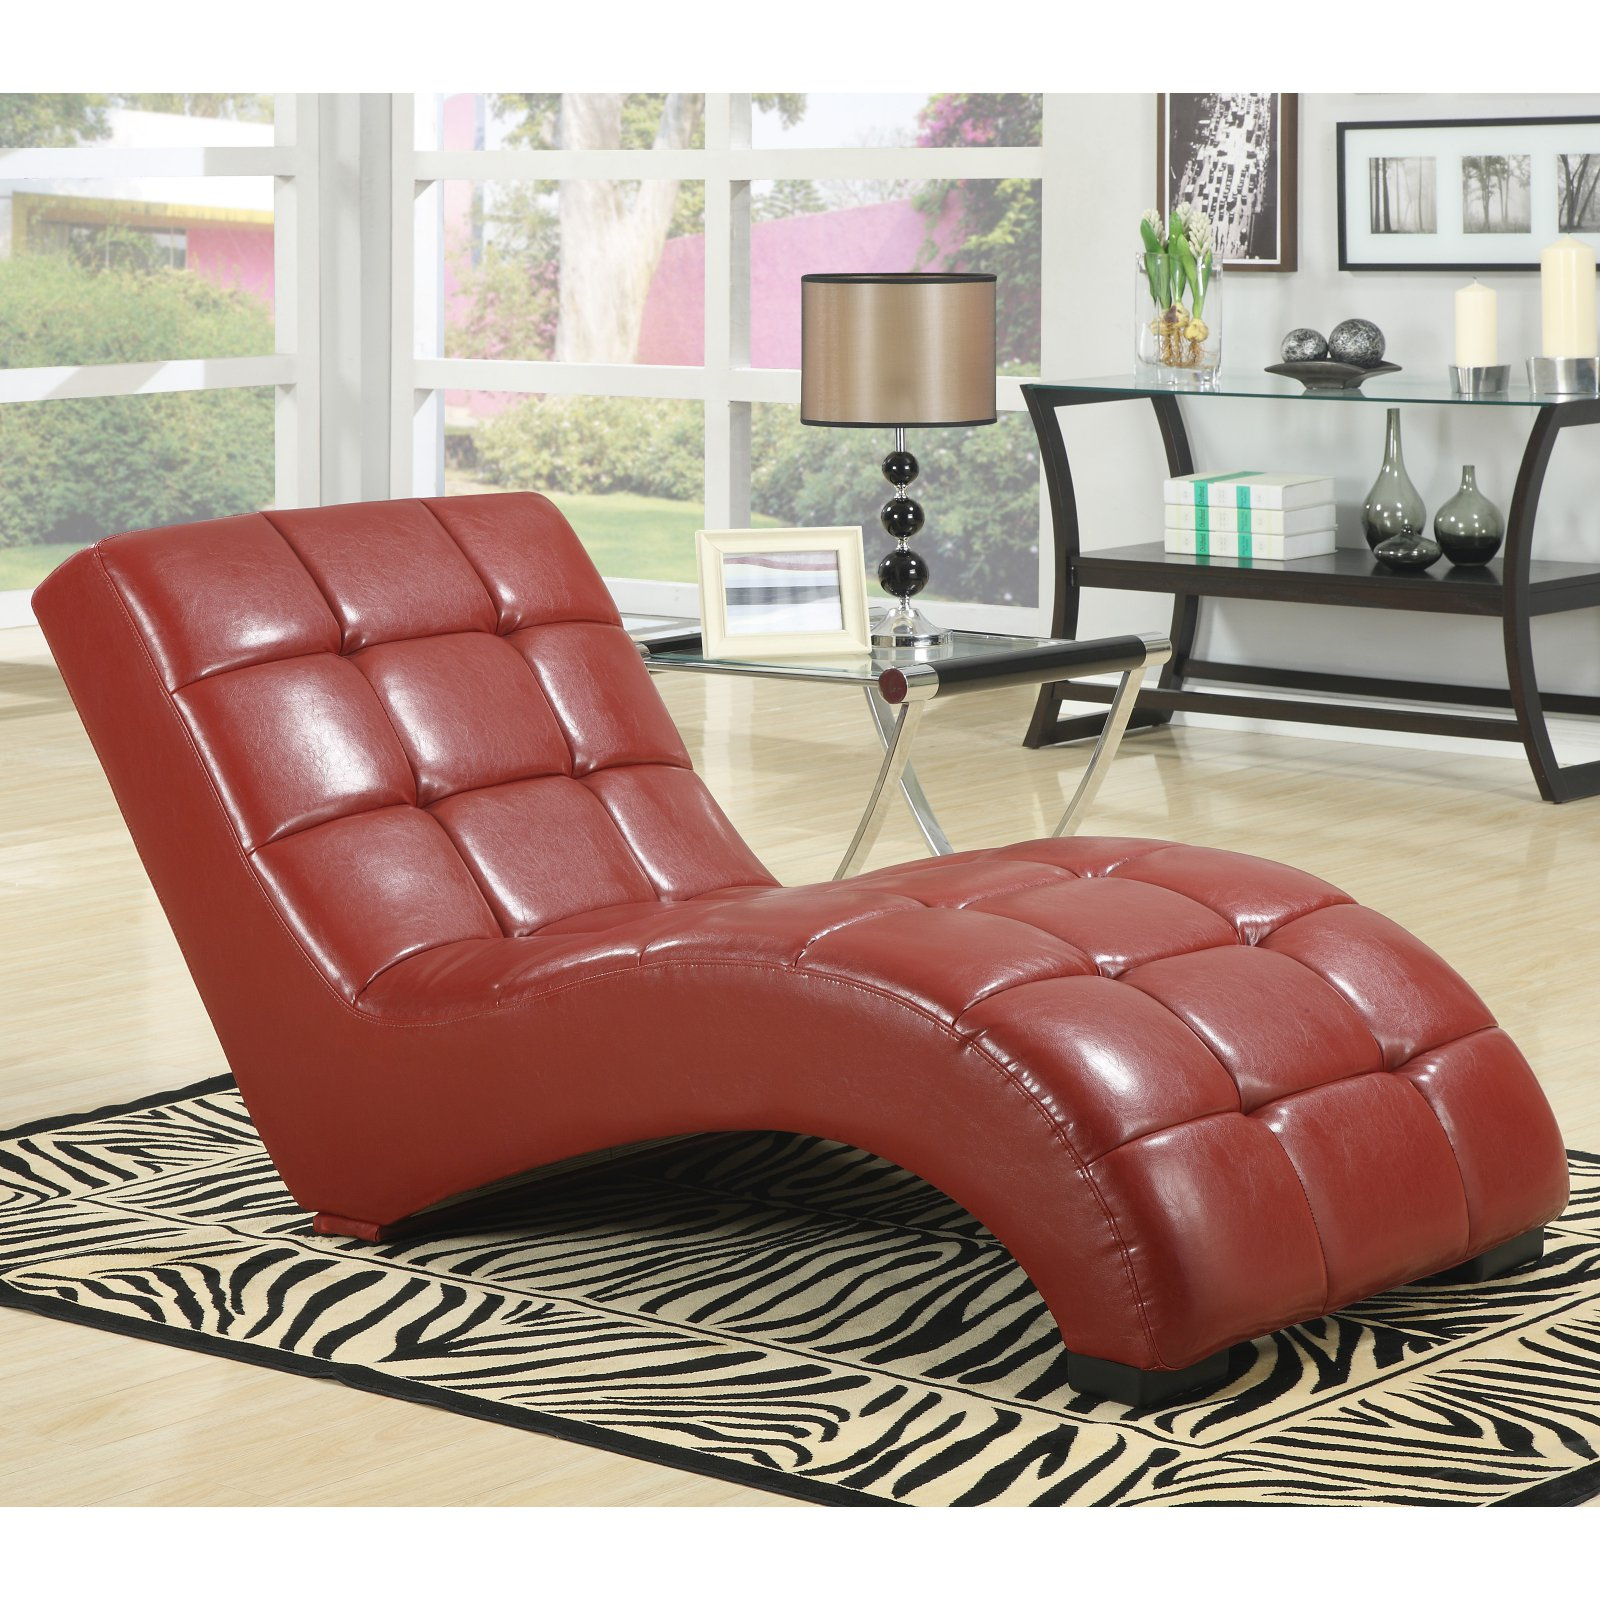 Emerald Home Lounger Chaise - Red : emerald home furnishings chaise lounge - Sectionals, Sofas & Couches